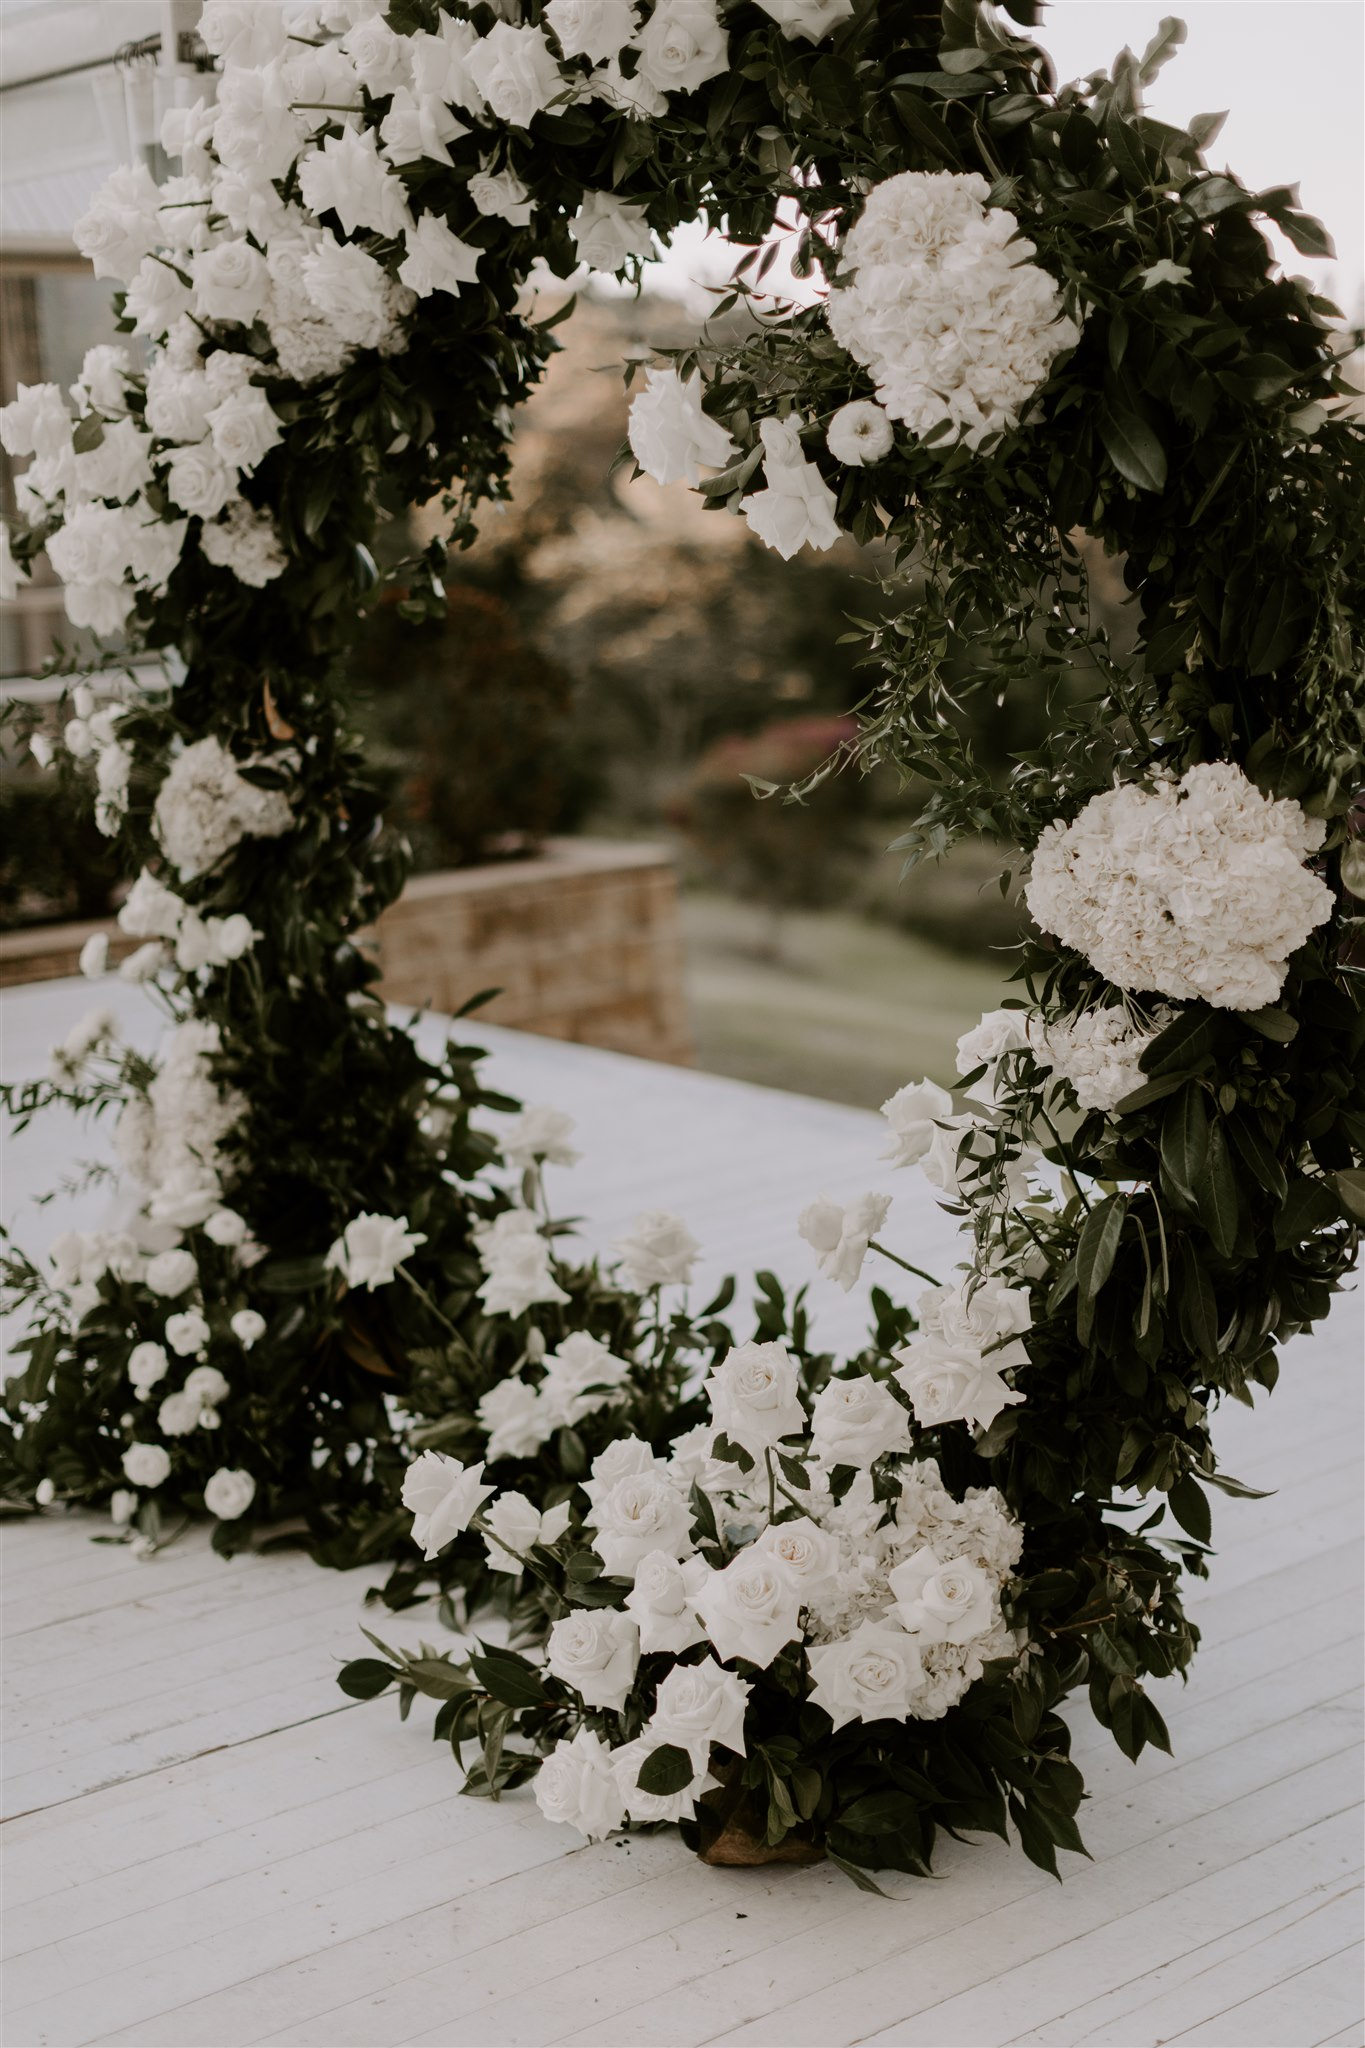 Love ring arbour with massed white blooms and lush greenery